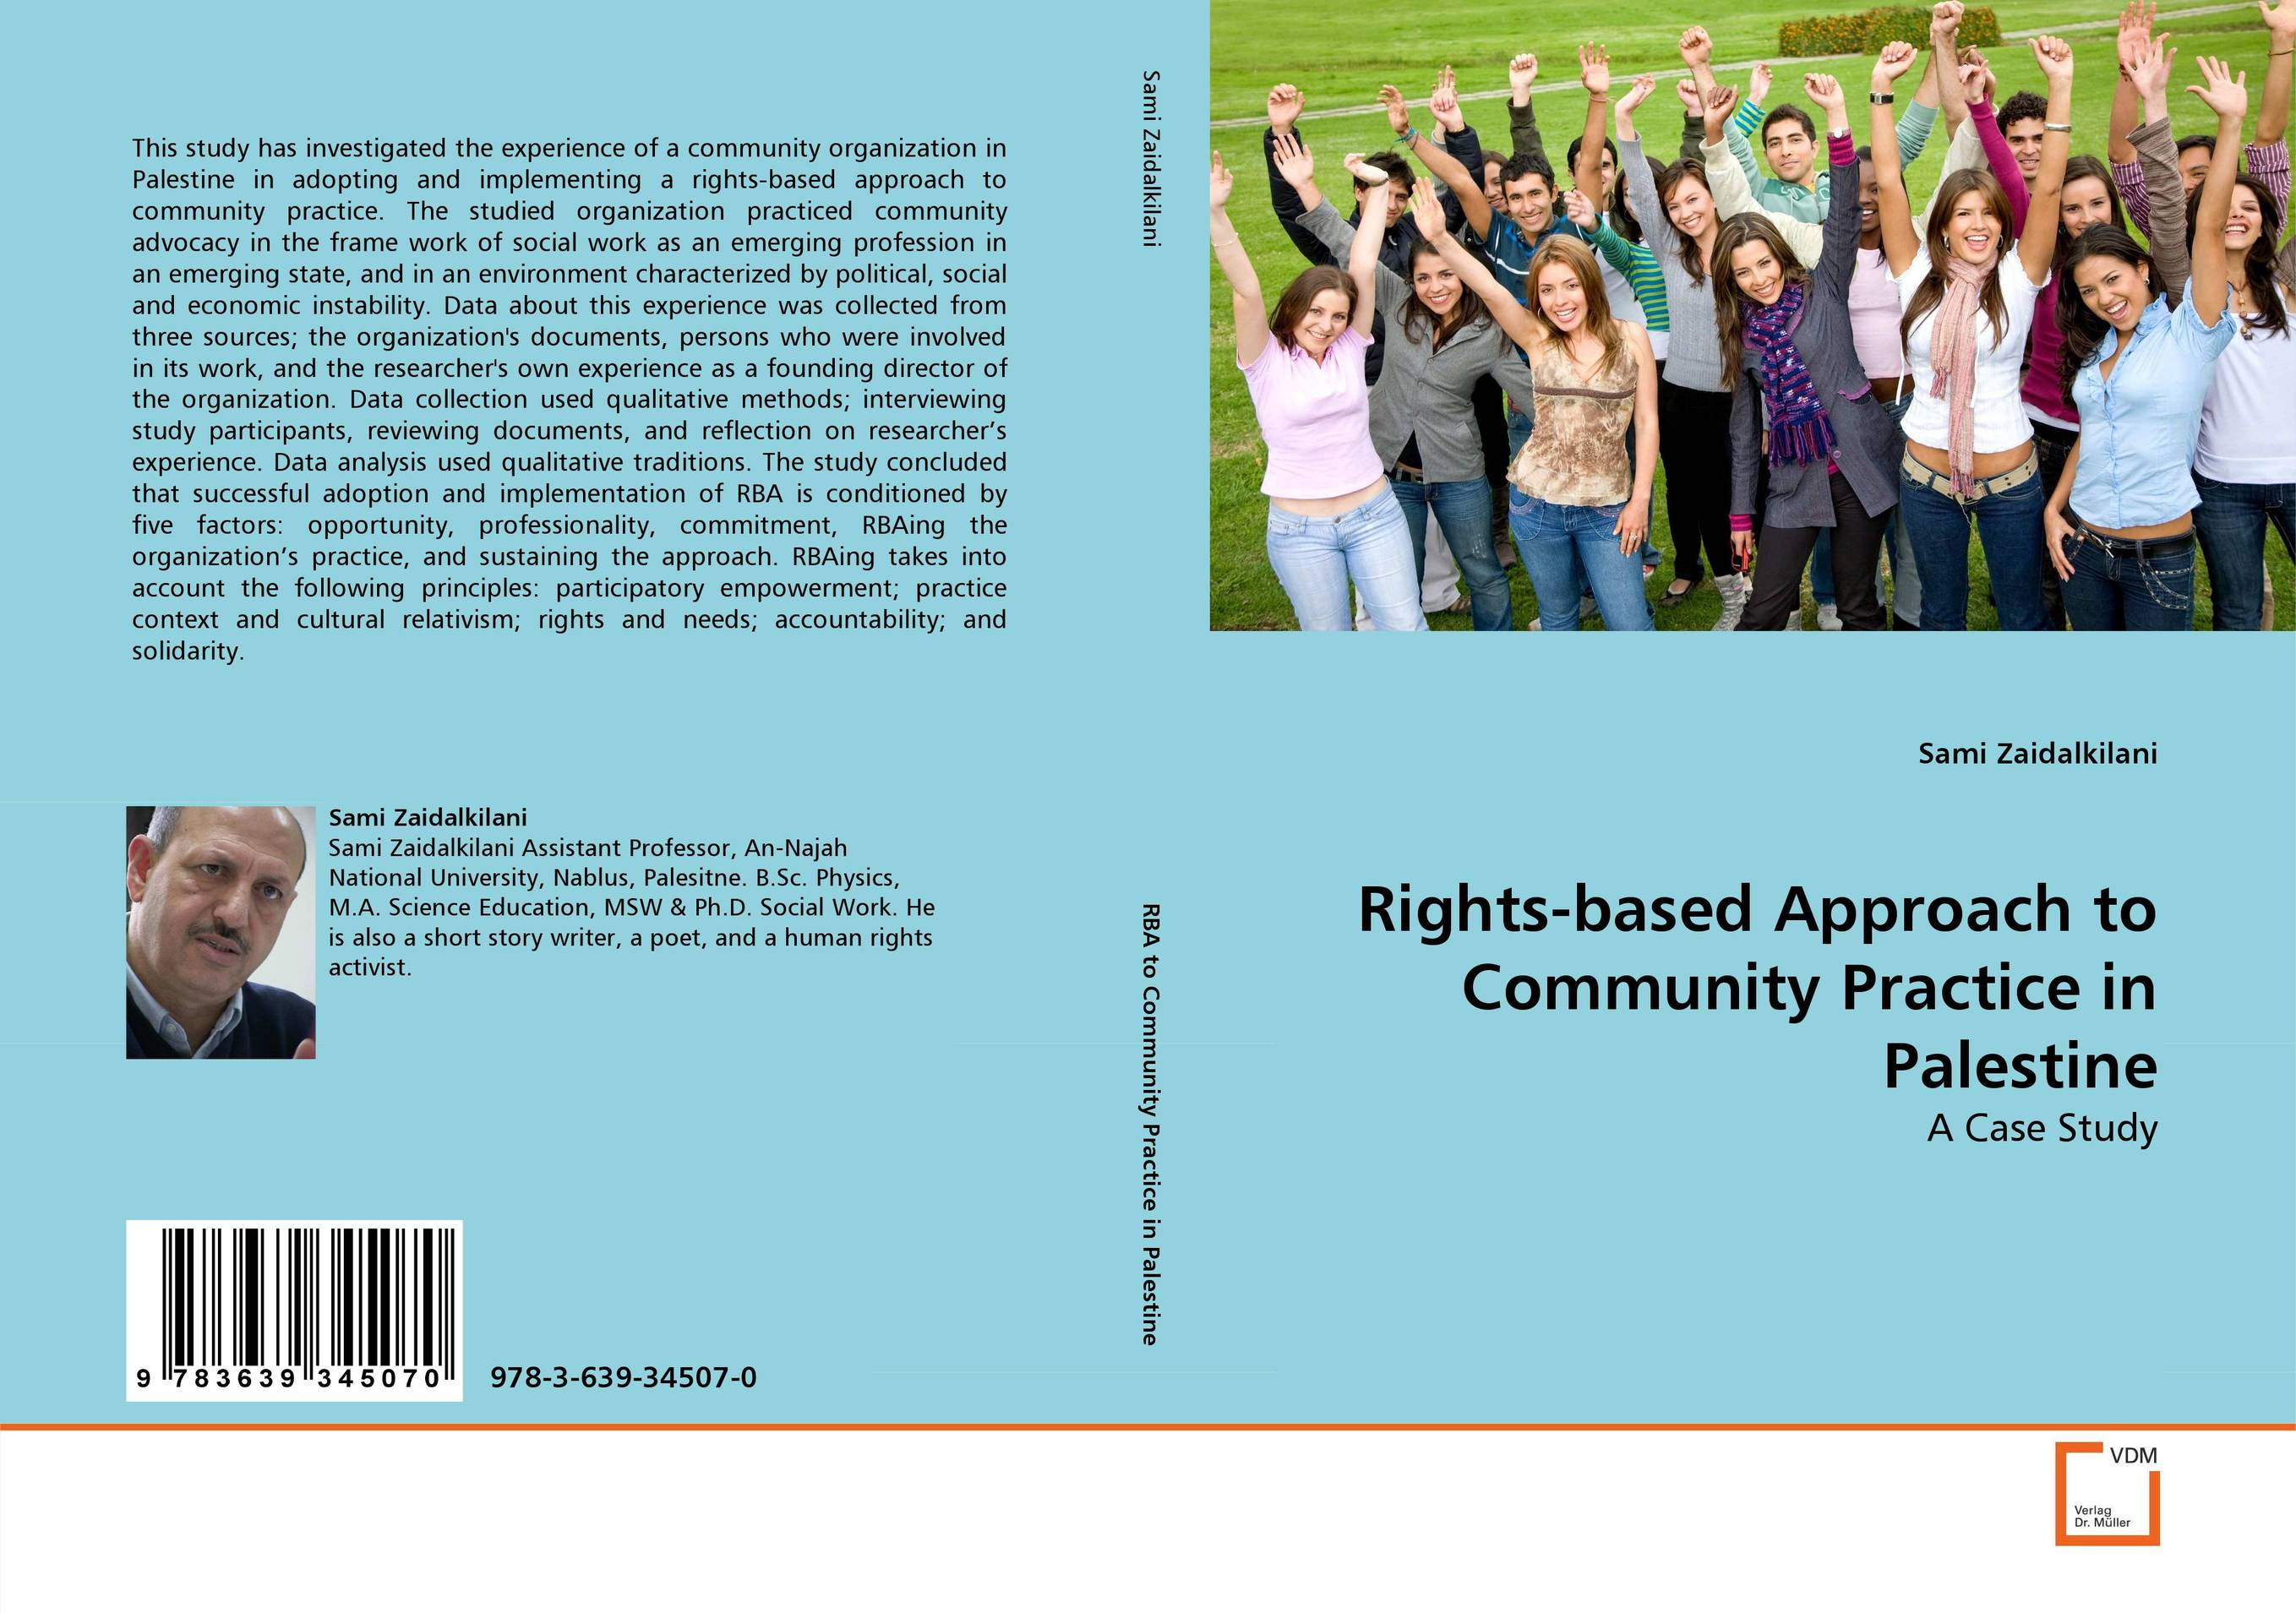 Rights-based Approach to Community Practice in Palestine